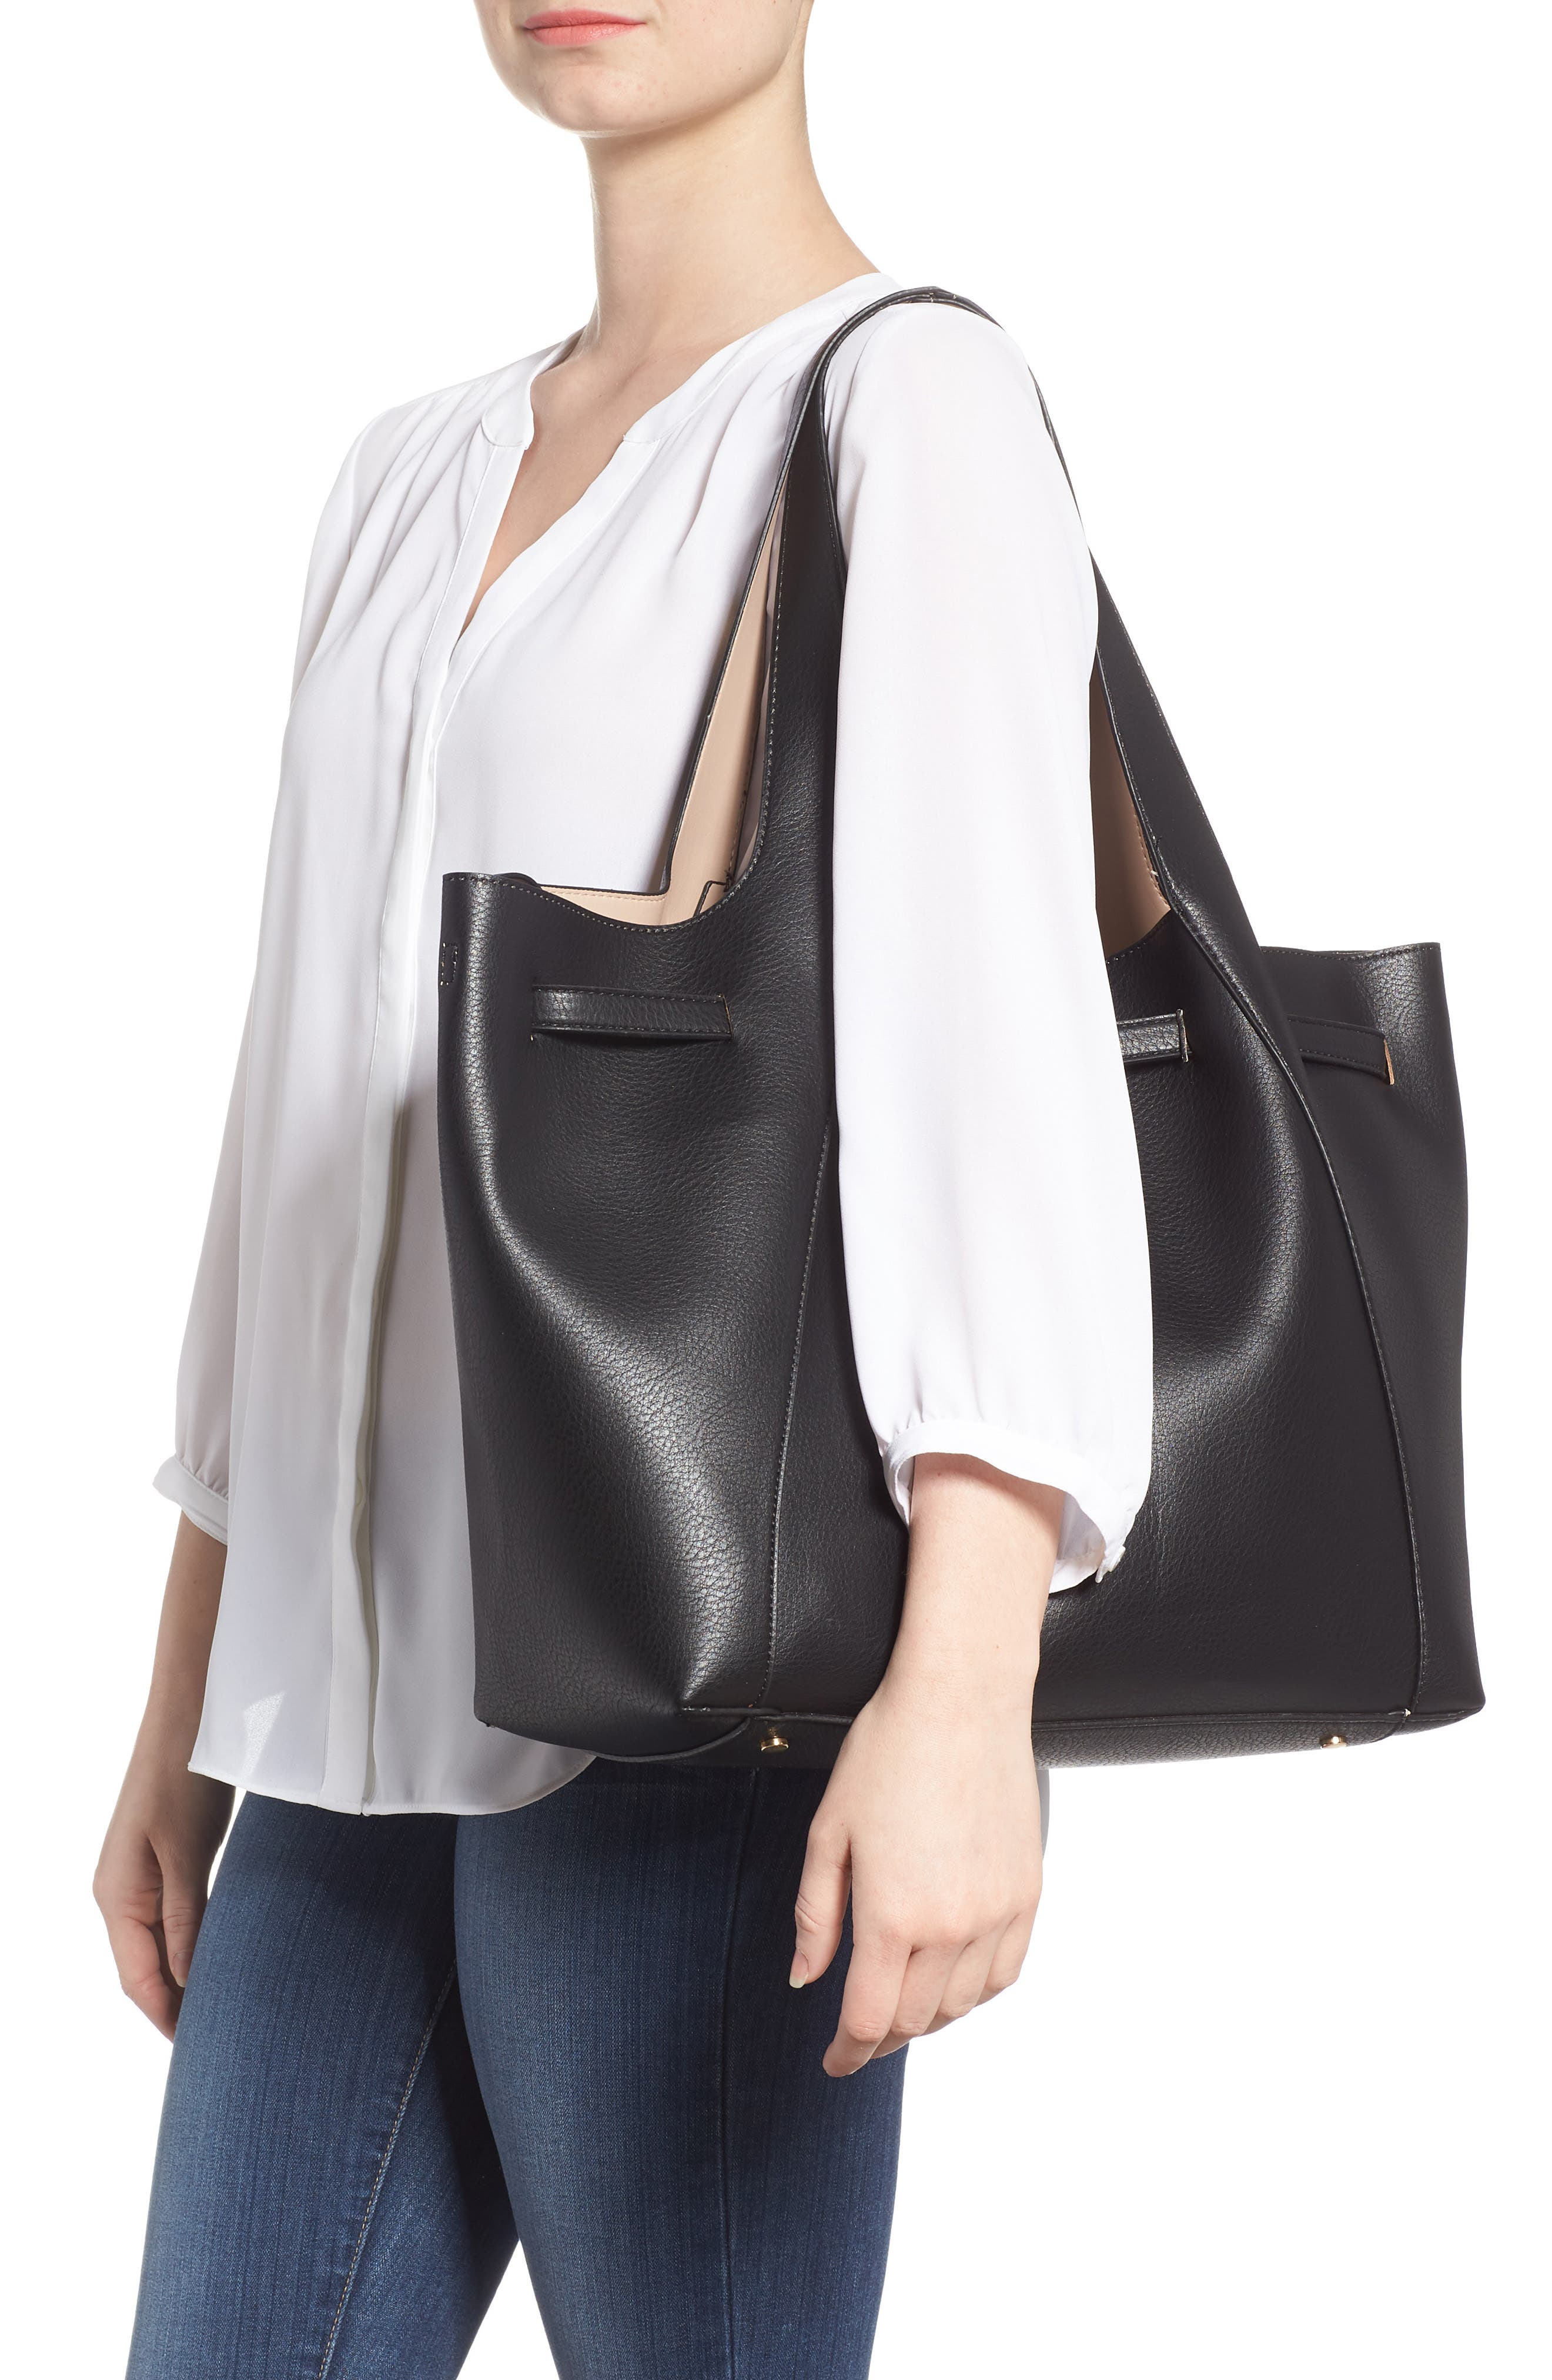 Keely Tote Bag,                             Alternate thumbnail 2, color,                             Black